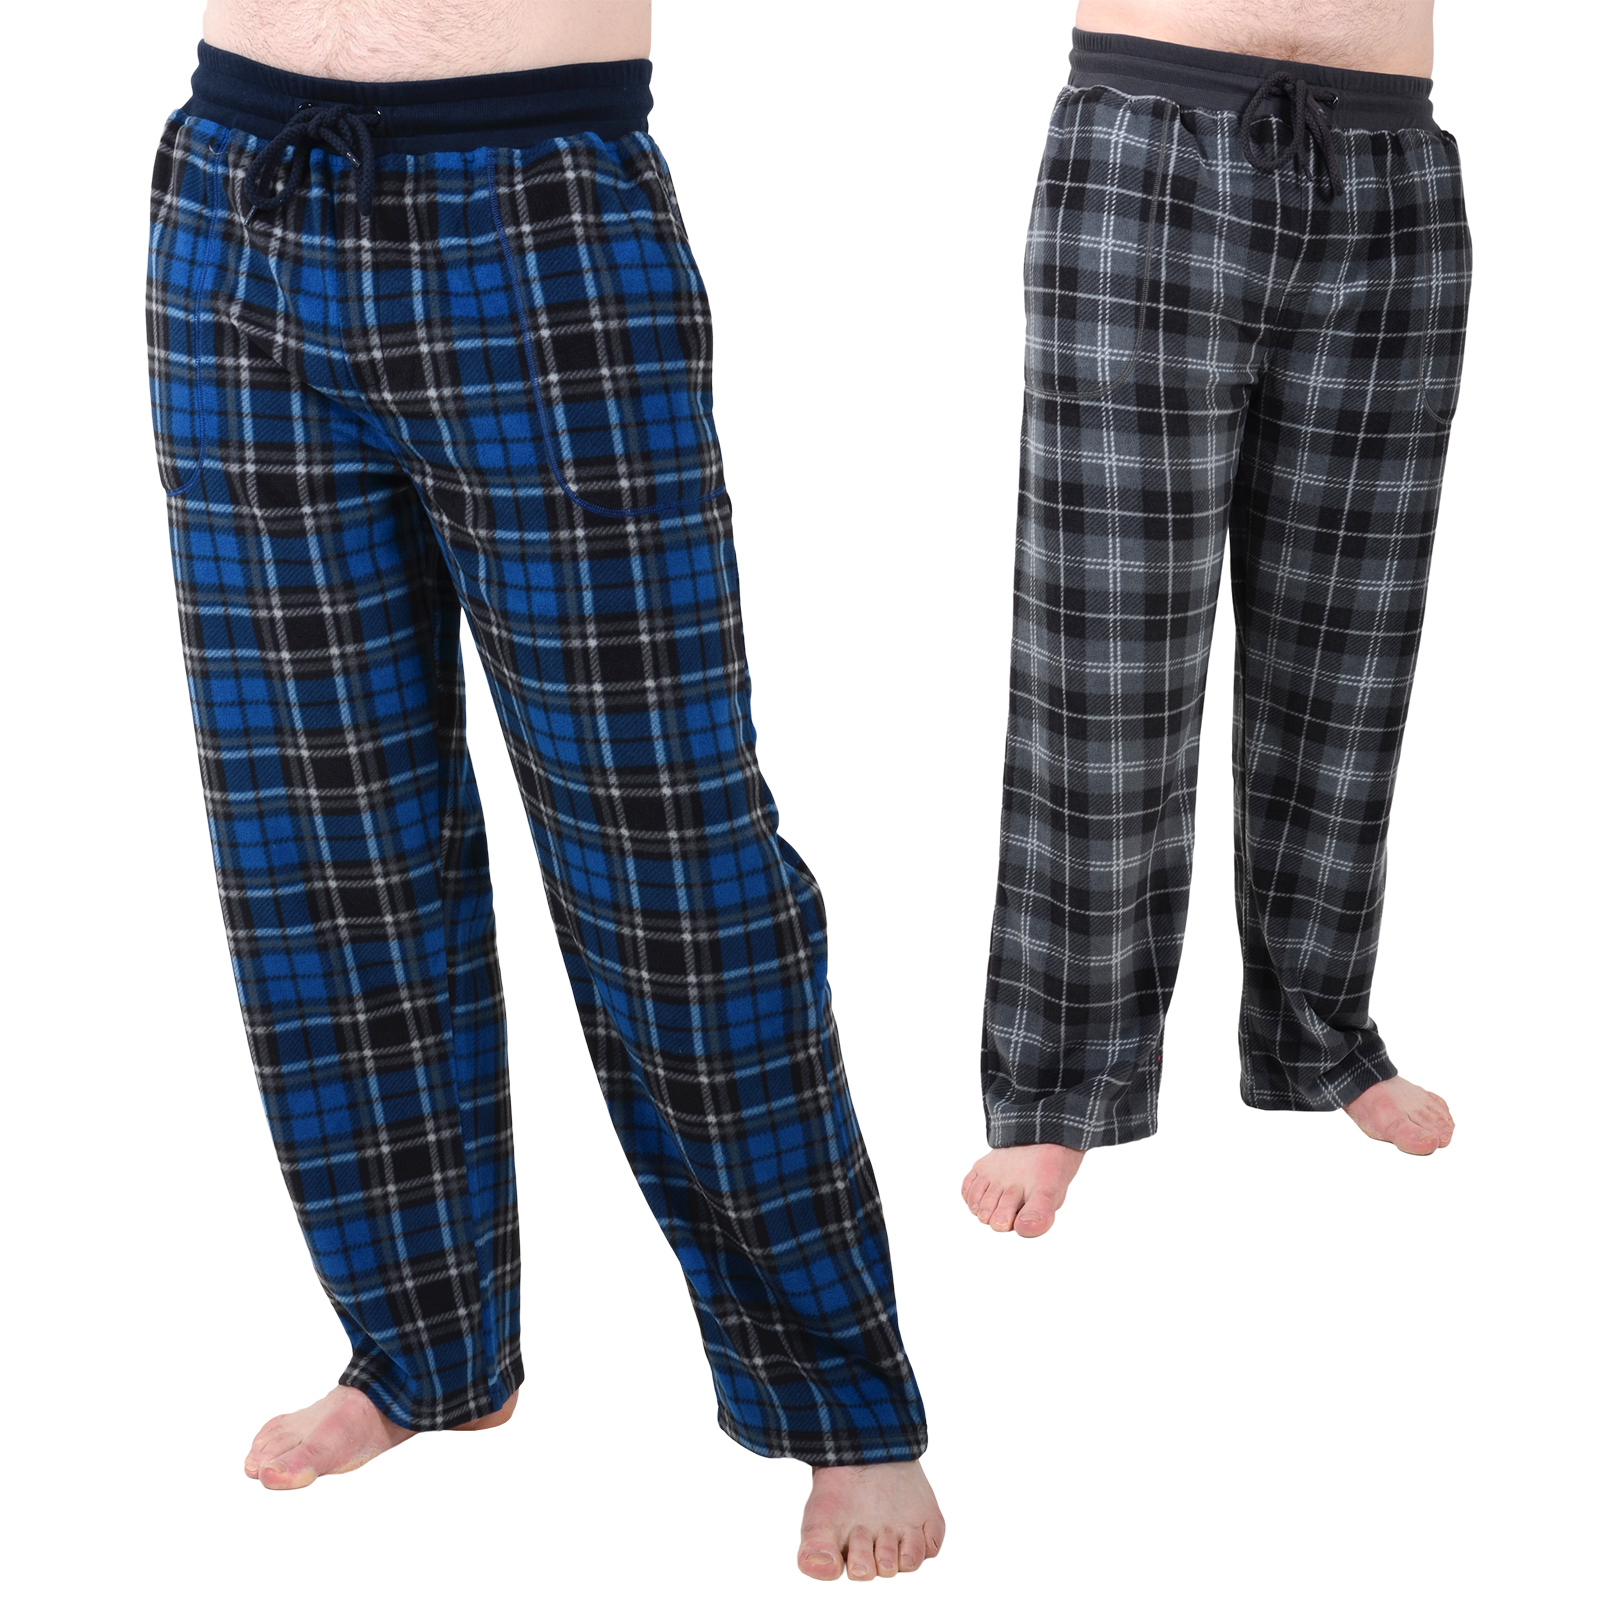 Pajamas: Free Shipping on orders over $45 at xajk8note.ml - Your Online Loungewear Store! Get 5% in rewards with Club O!